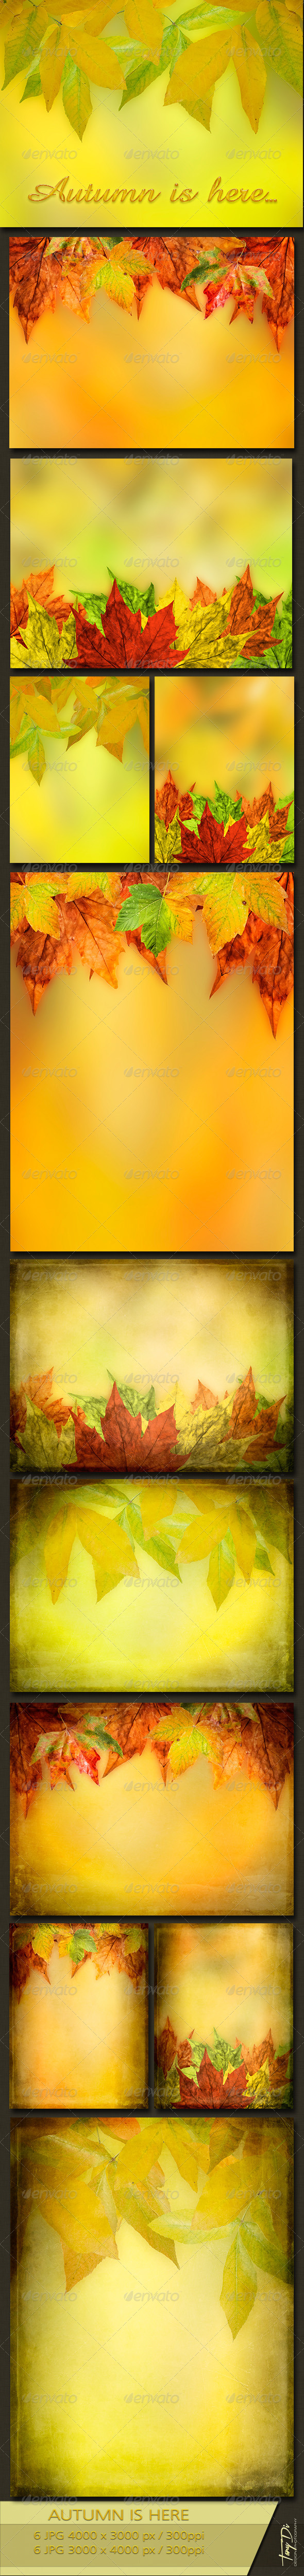 GraphicRiver Autumn is Here ep2 5735379